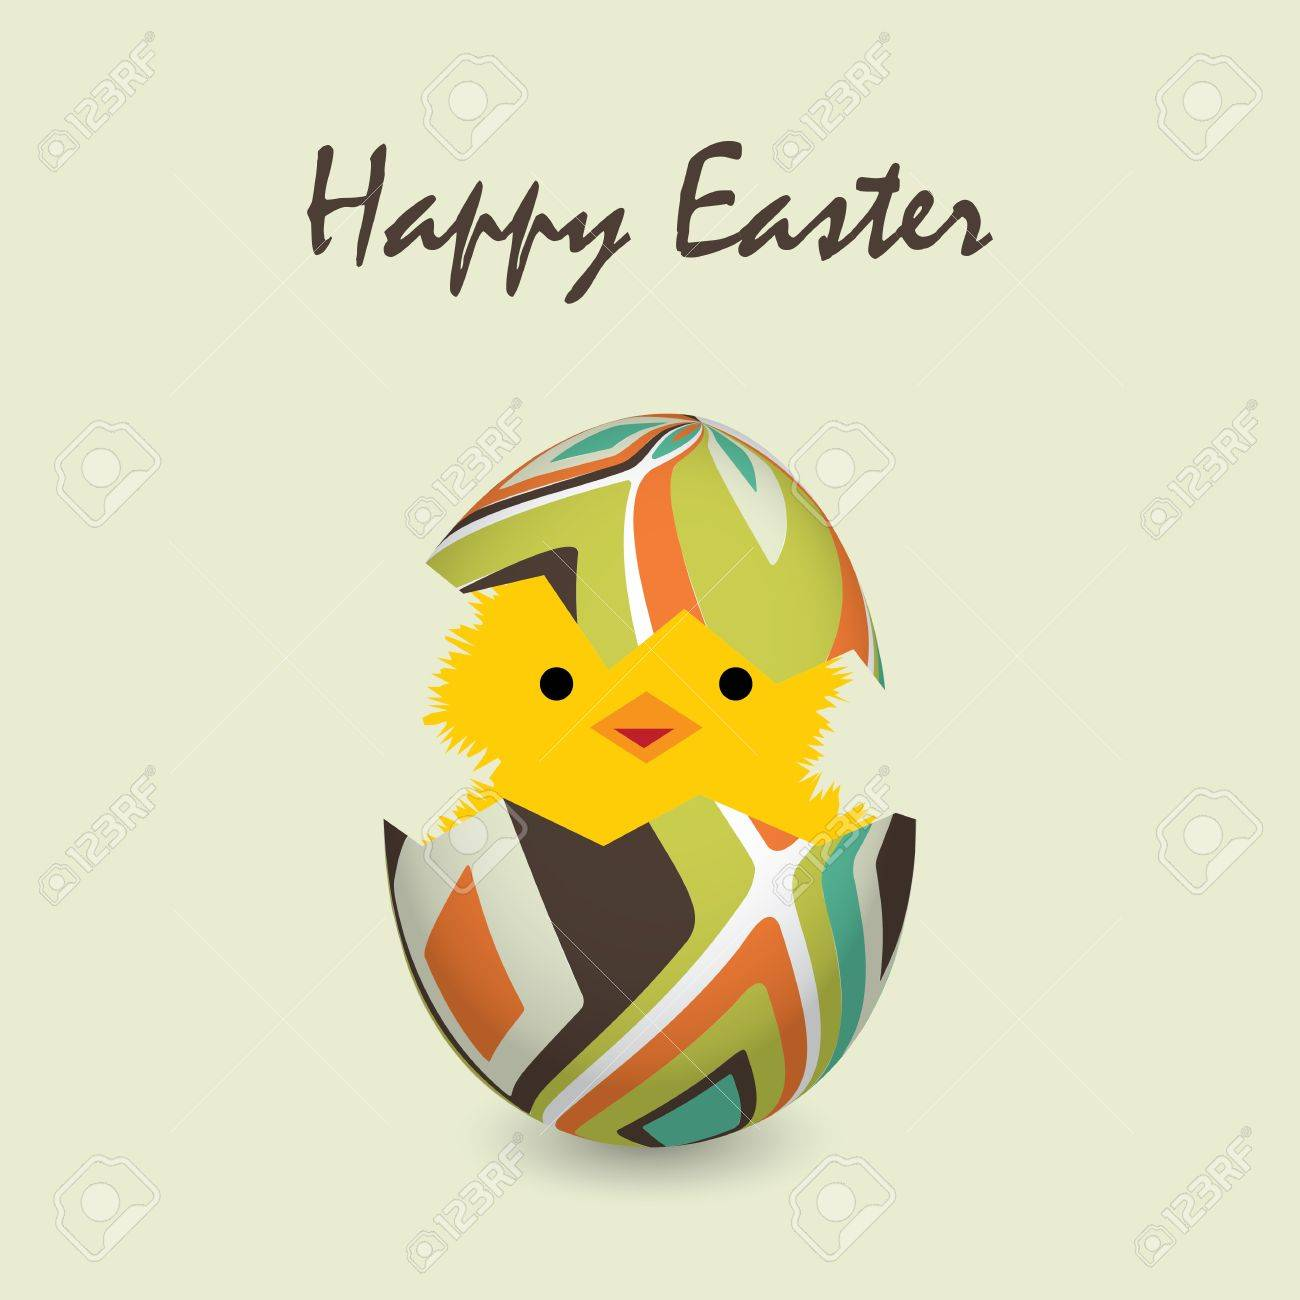 easter card with a hatching chick, vector illustration Stock Vector - 12929664